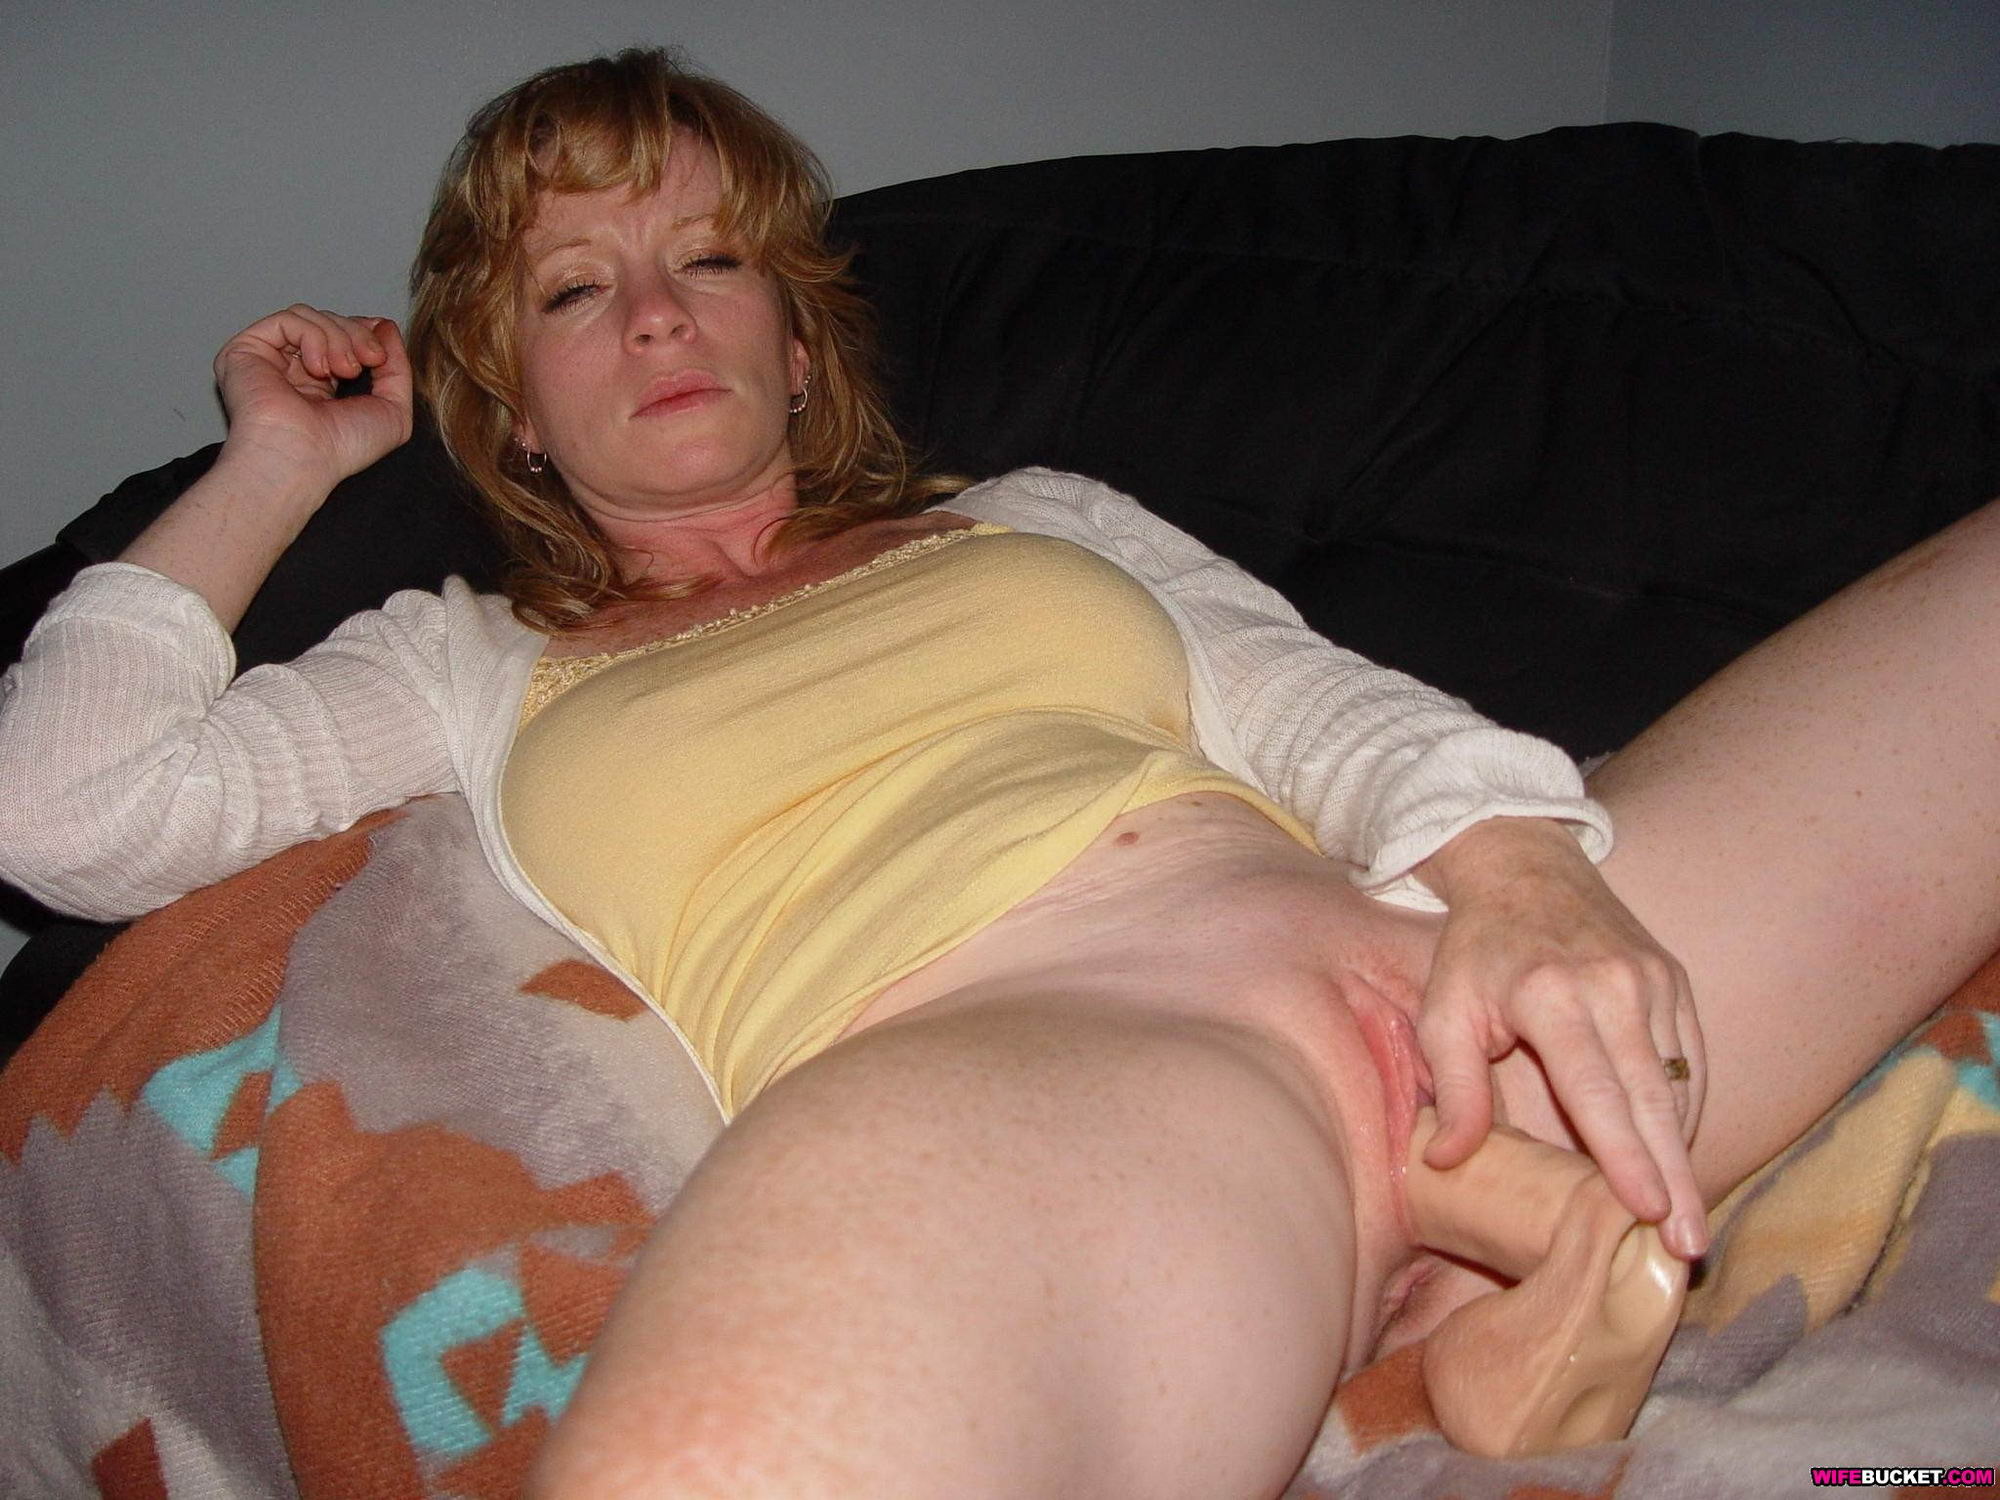 Real amateur milf swinger and exhibitionnist